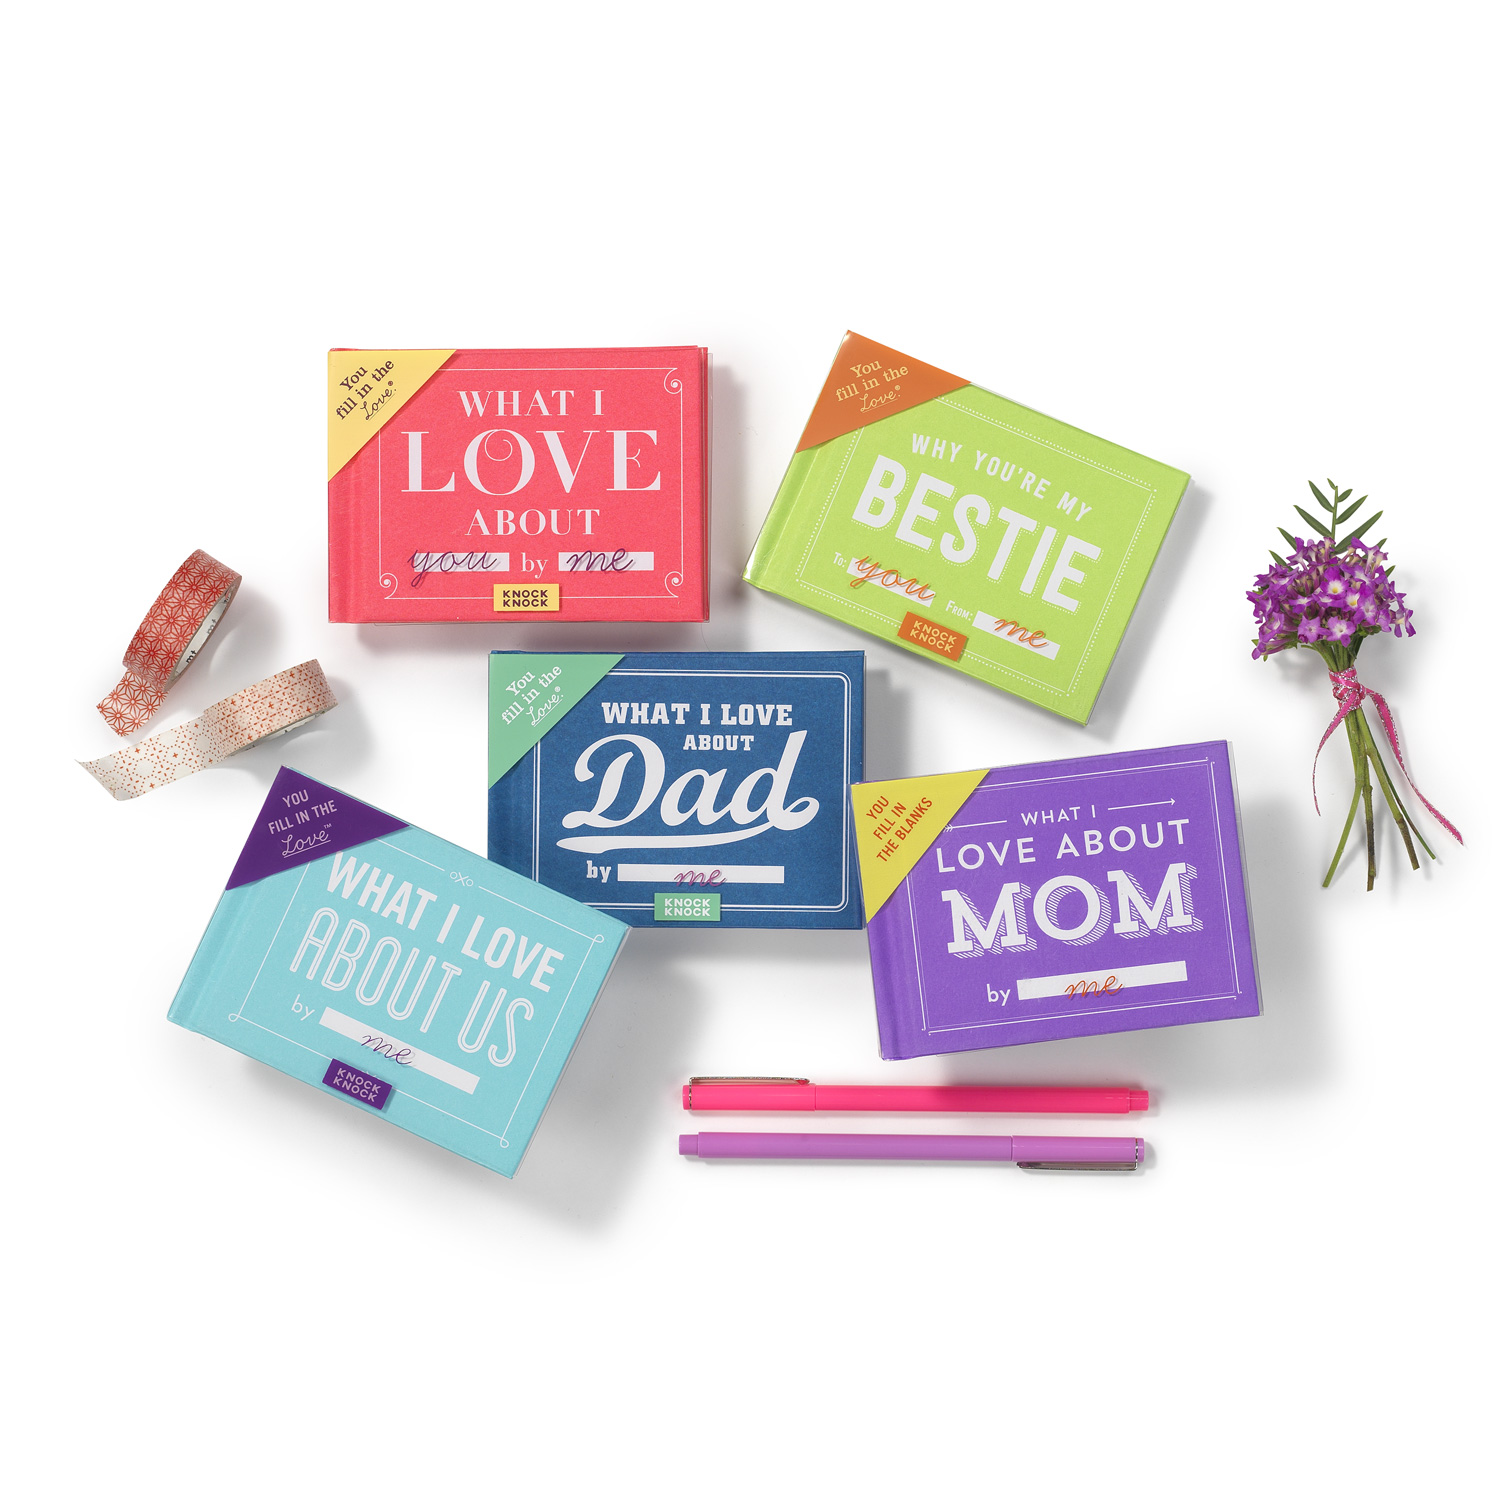 Knock Knock Fill in the Love Books - Personalized Fill-in-the-Blank Gift Books